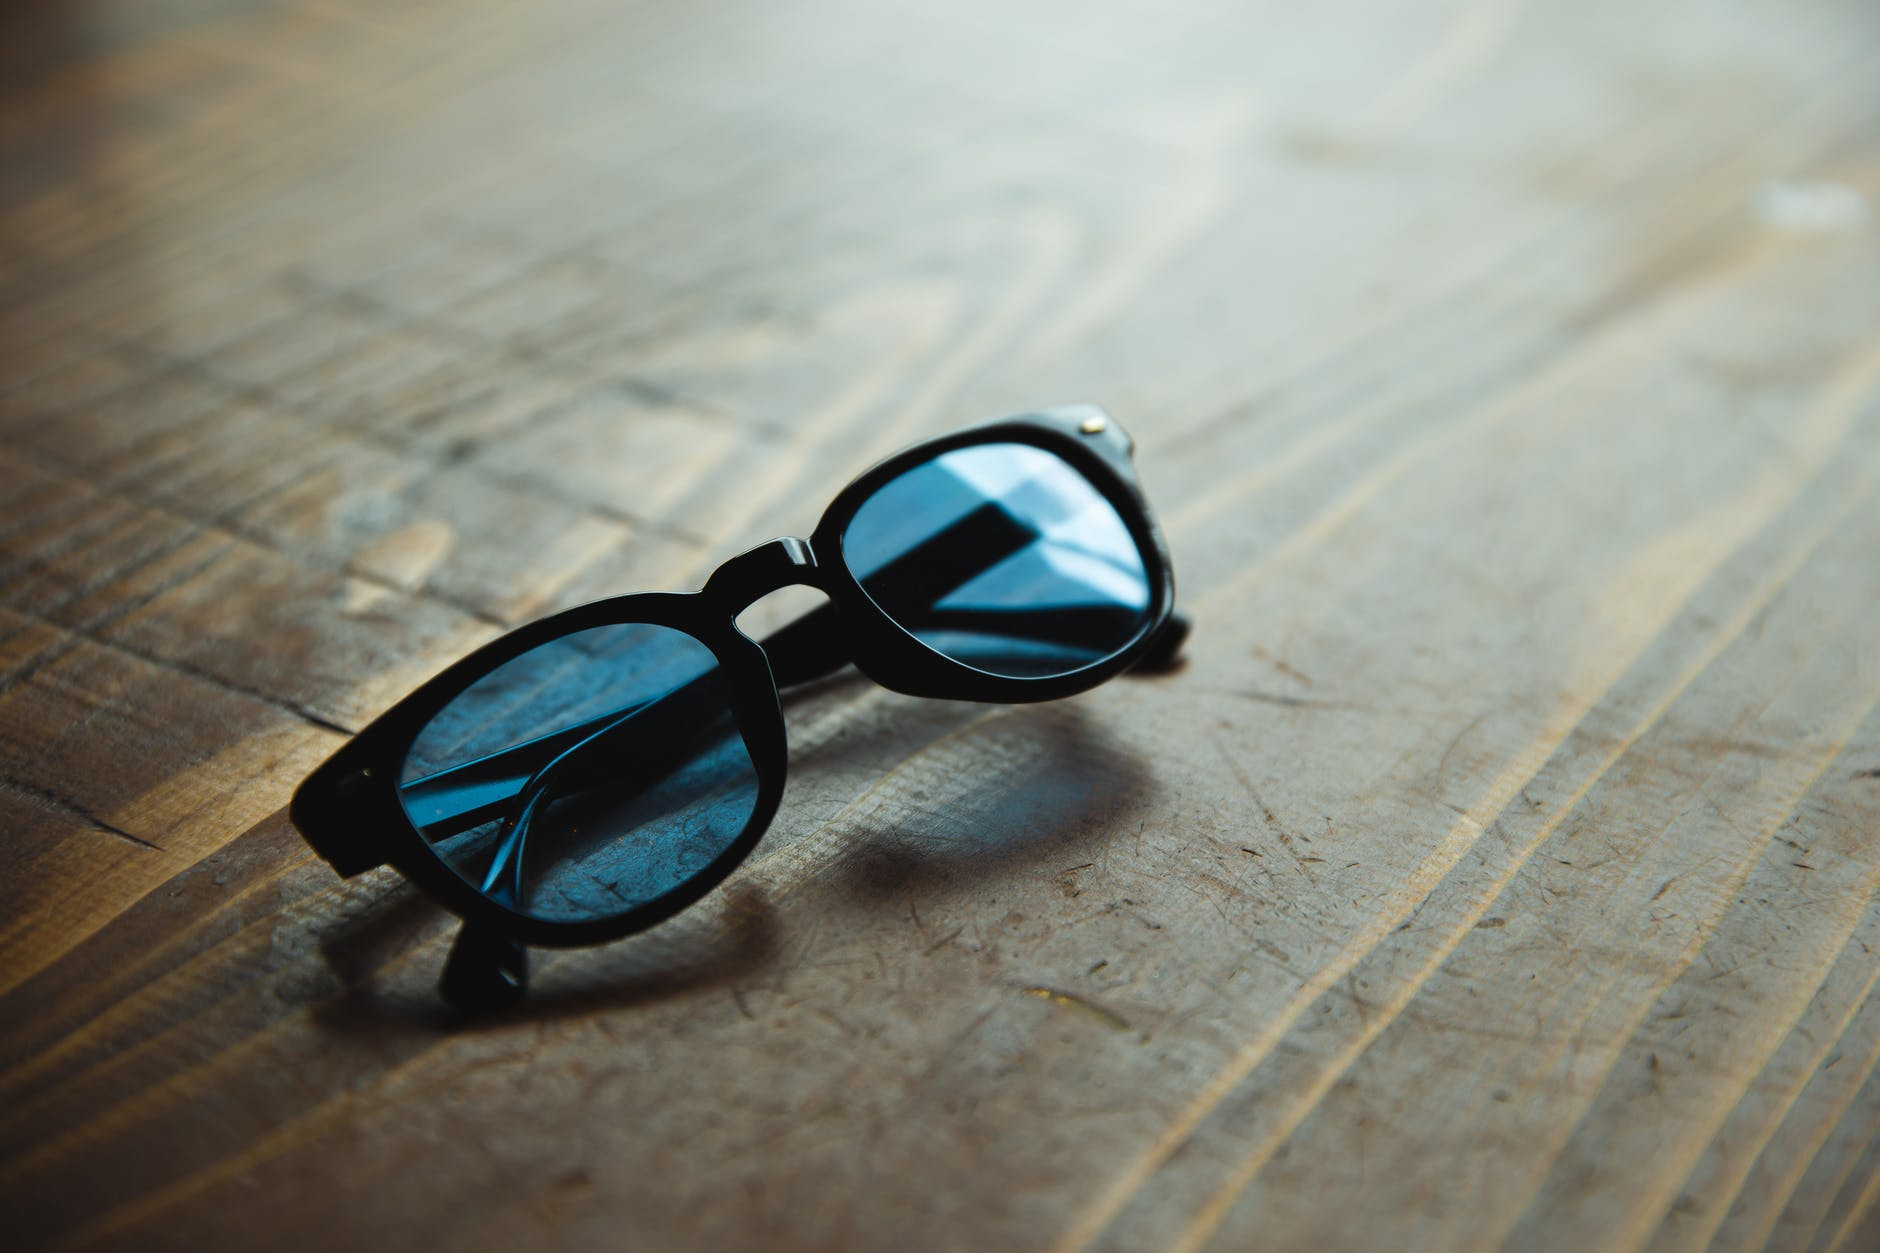 trendy sunglasses placed on wooden table